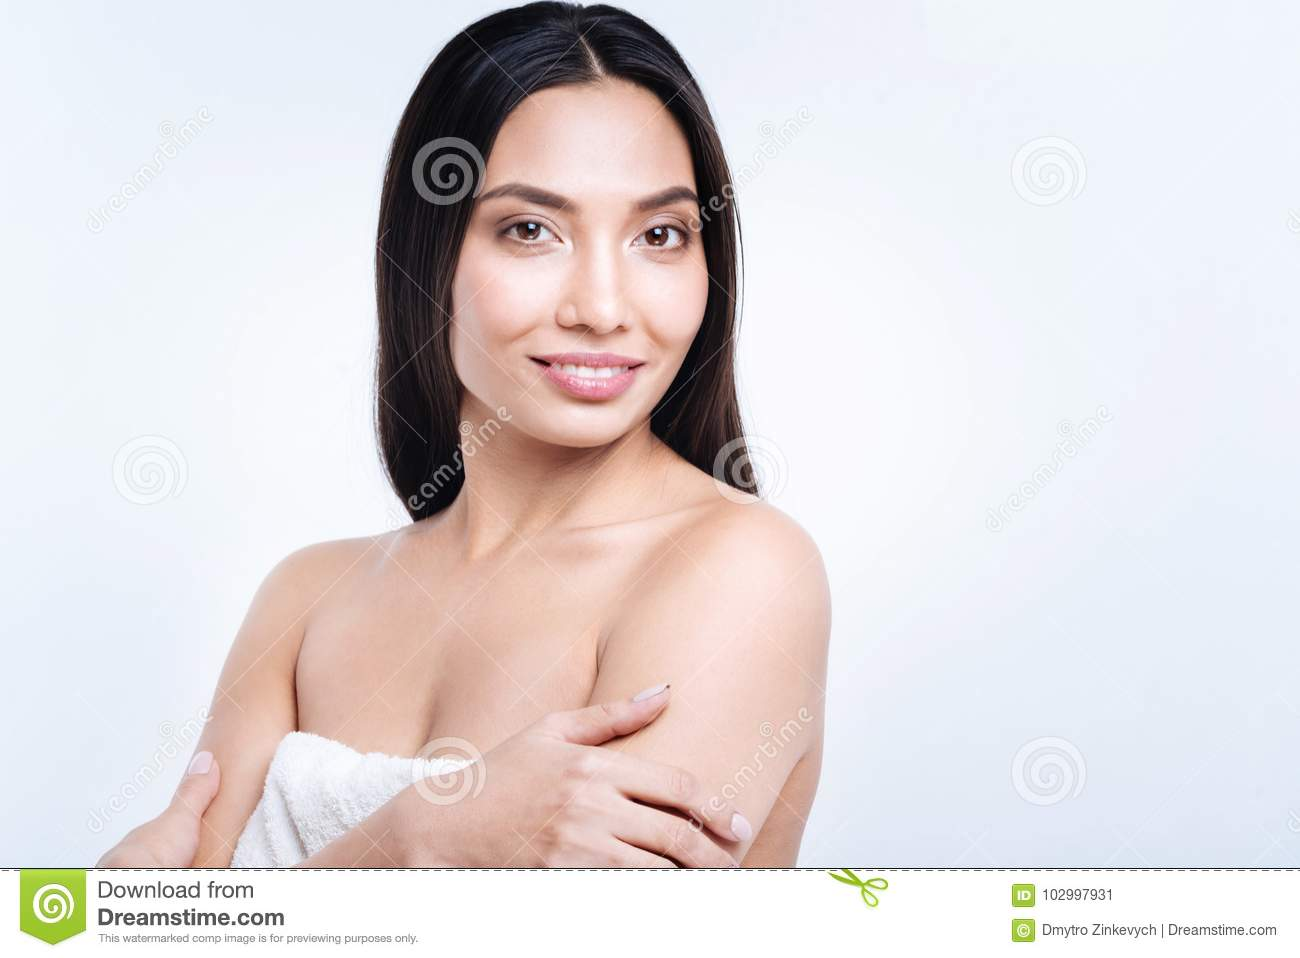 Cheerful woman with loose hair posing in towel